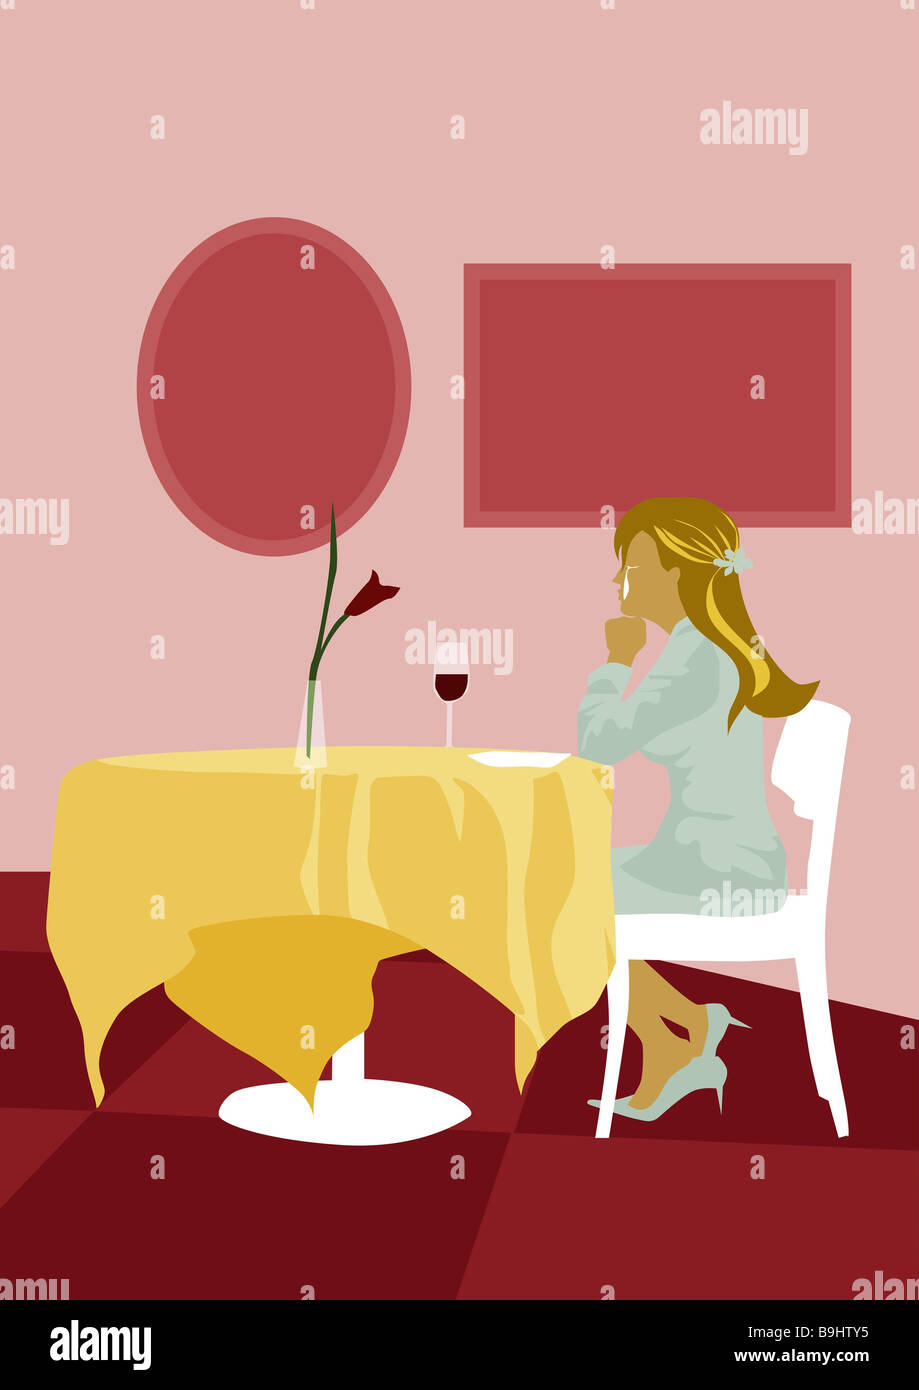 Illustration woman young cries table sitting alone lateral blond long-haired pub restaurant indoors secluded separated - Stock Image